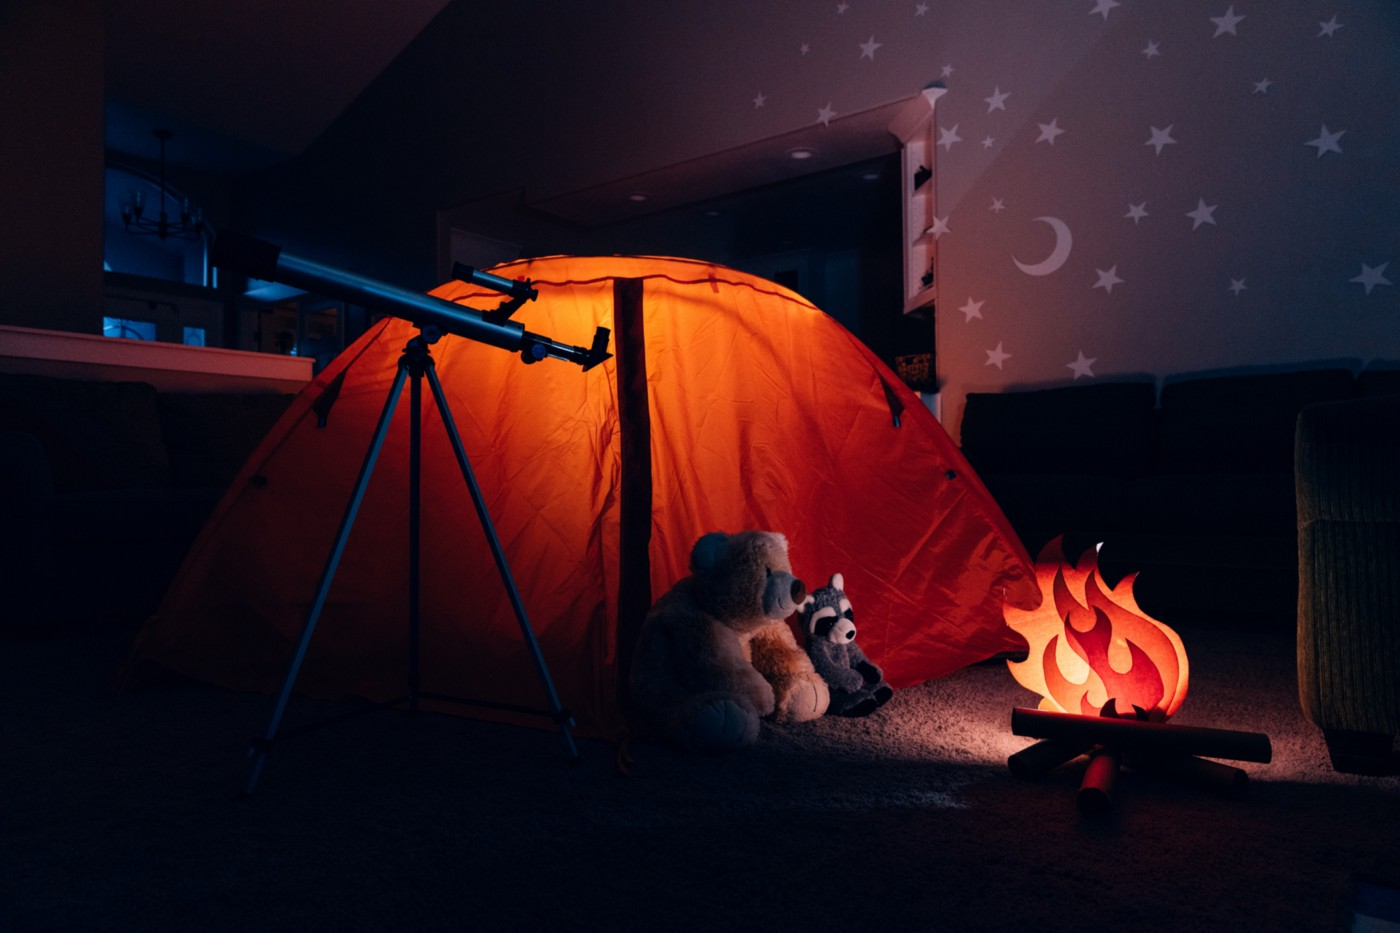 Tent and fake campfire set up indoors with stuffed animals huddled around the fire and a telescope.